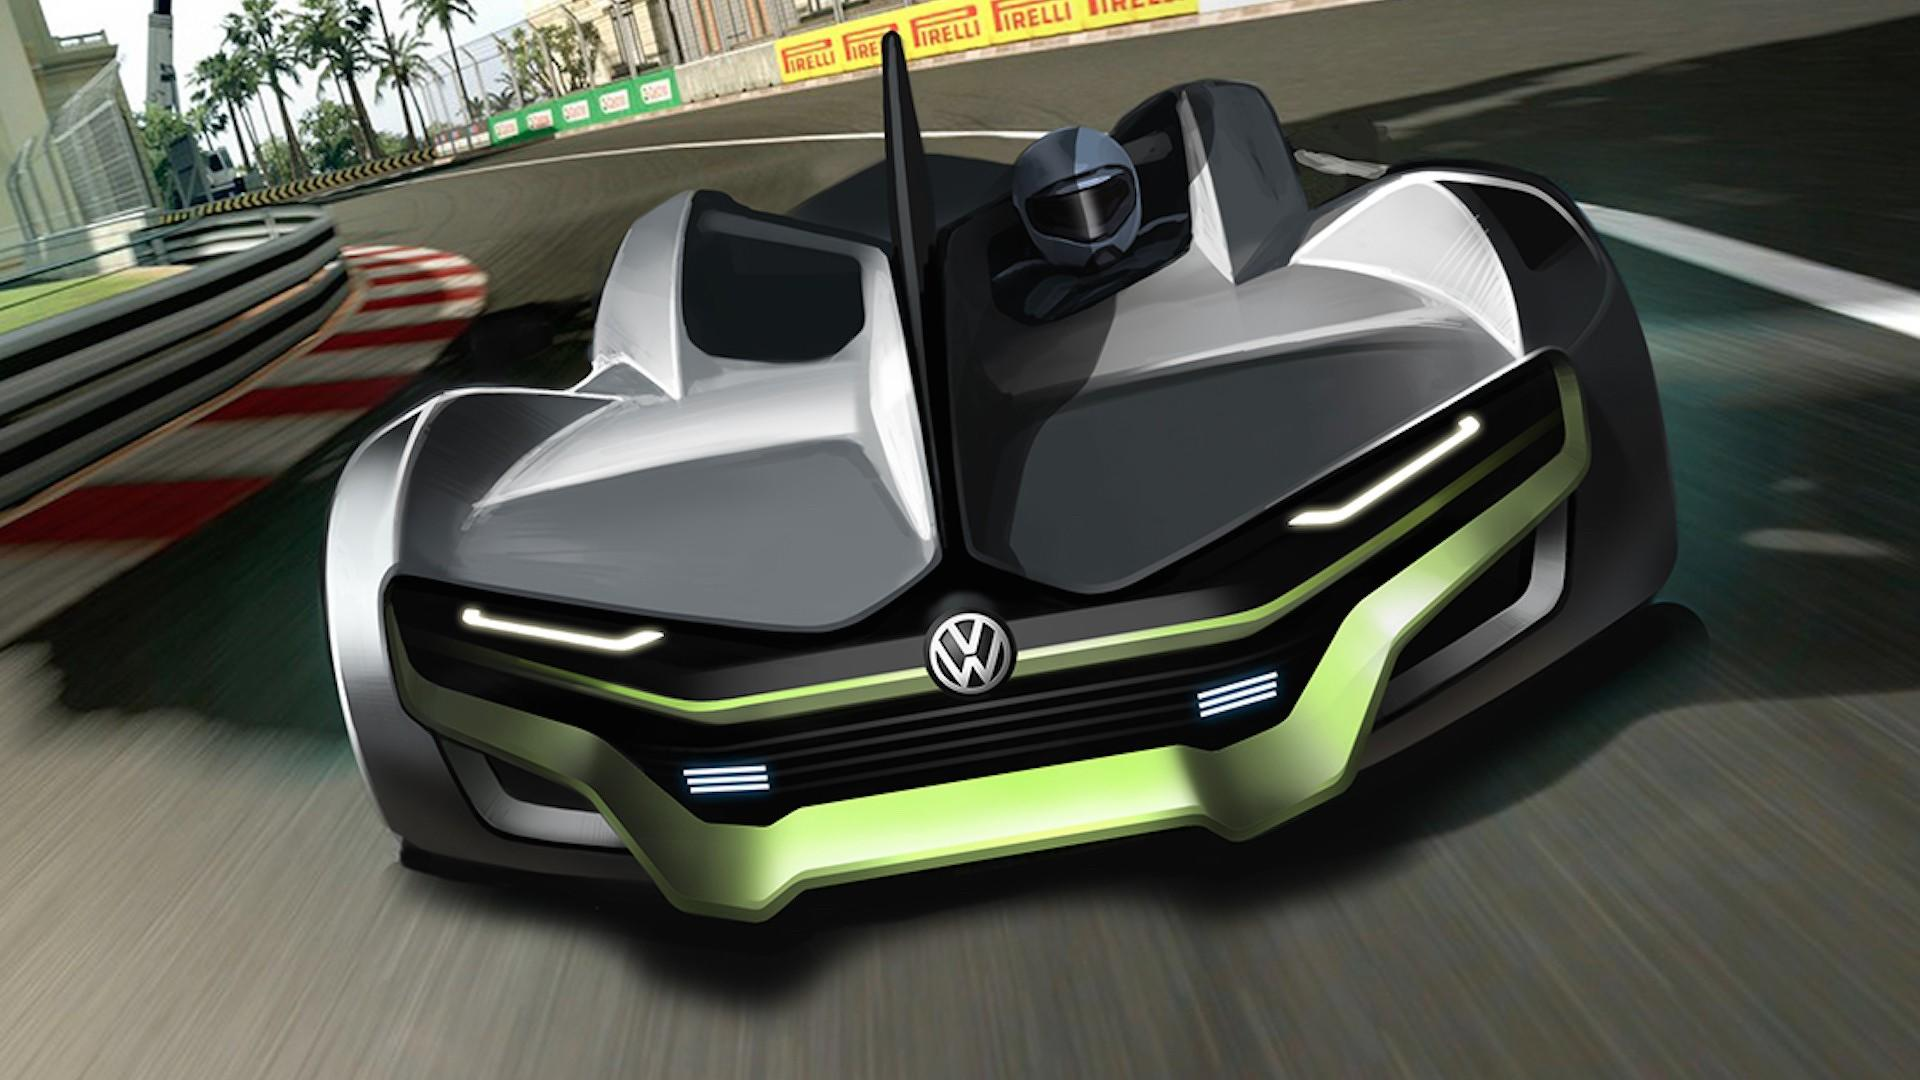 2023 vw sports car rendering looks ready for the track. Black Bedroom Furniture Sets. Home Design Ideas